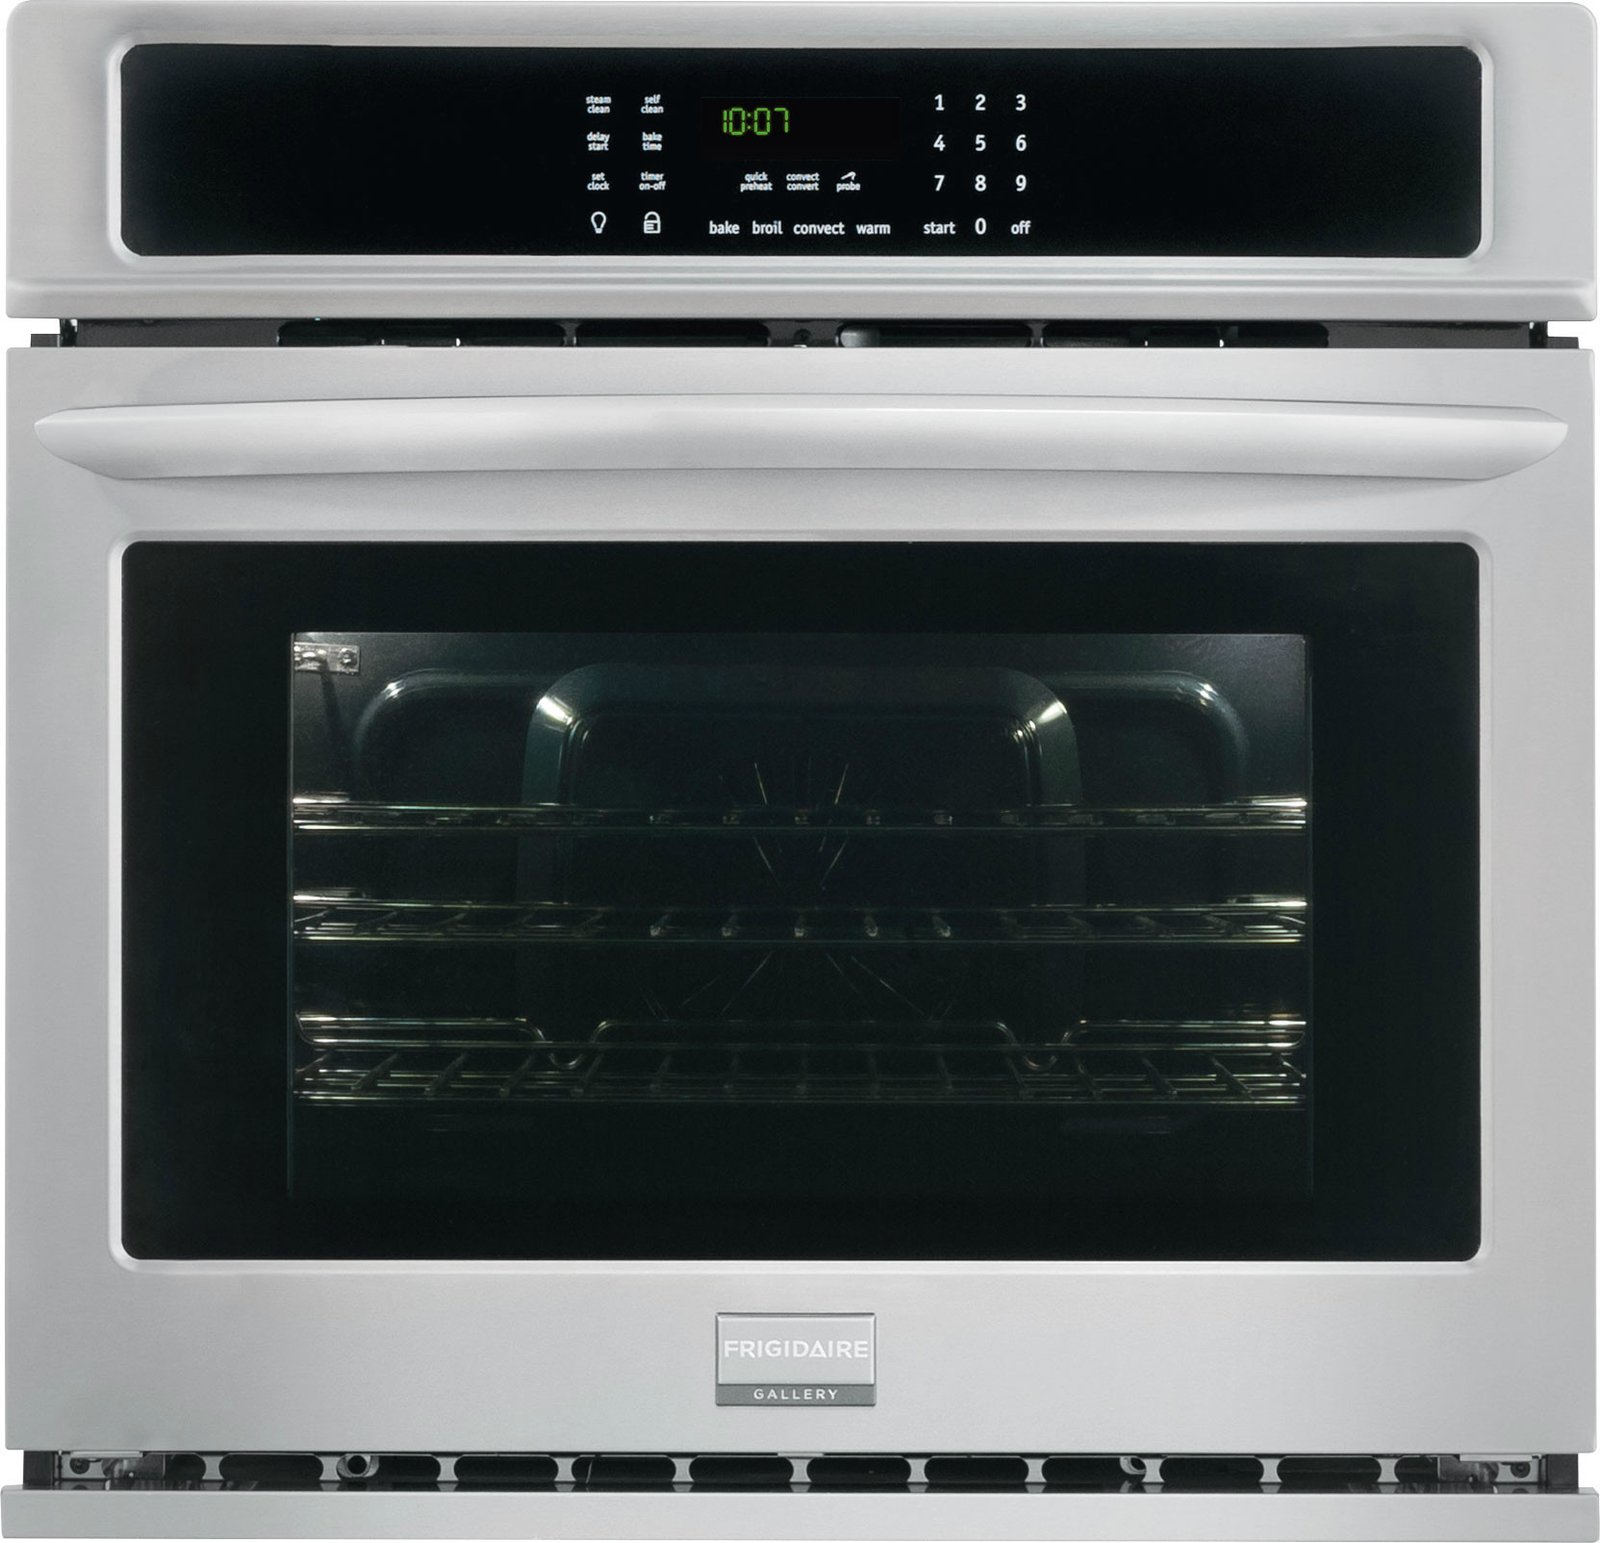 Frigidaire FGEW3065PF FGEW3065PF-Gallery 30'' Electric Single Wall Oven-Convection, 30 inches, Stainless Steel by FRIGIDAIRE